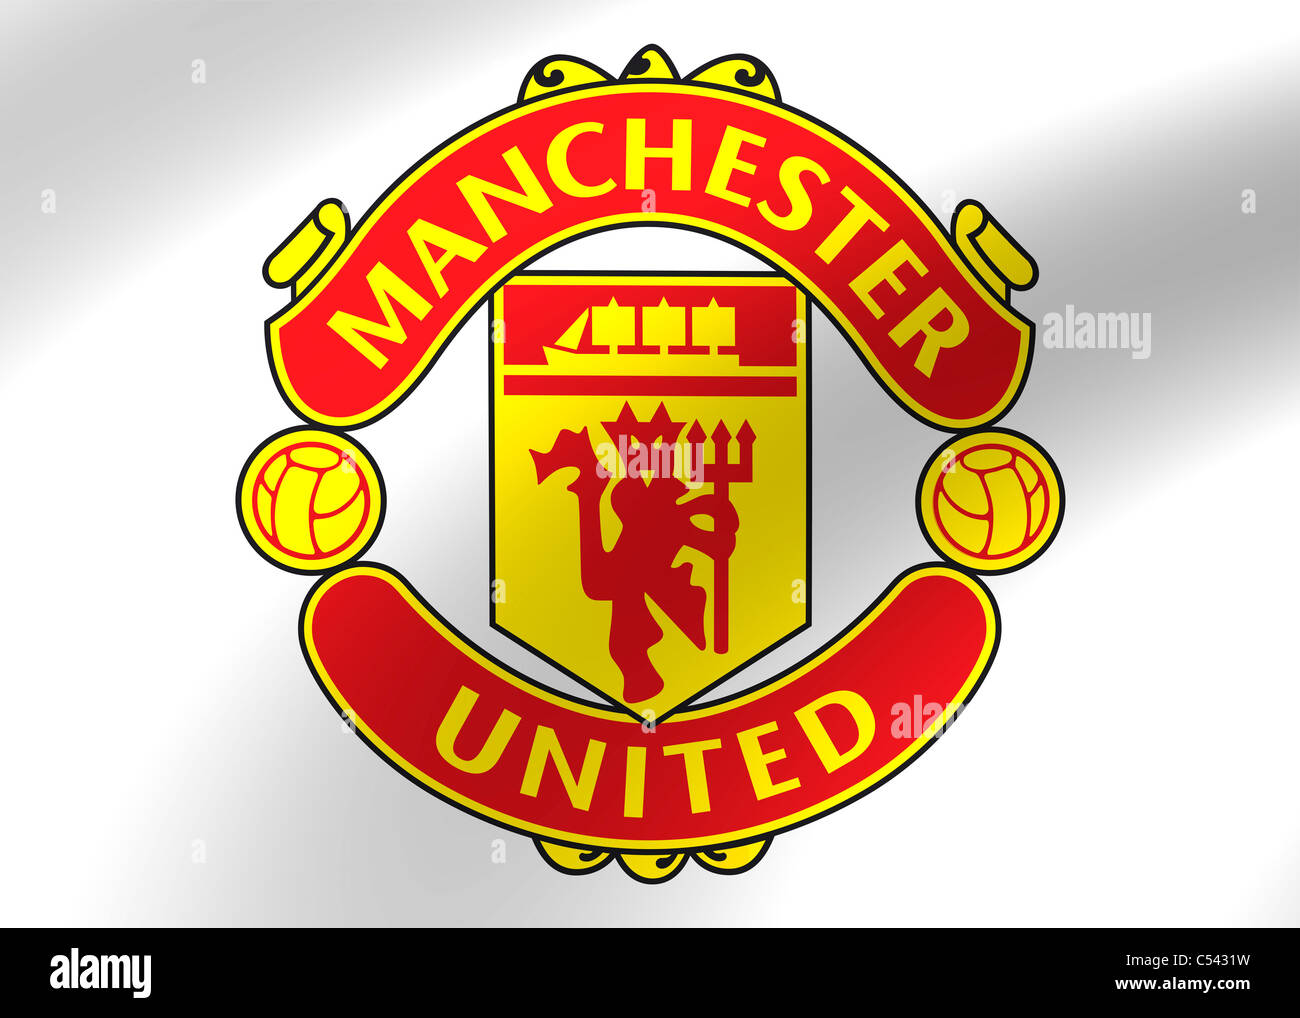 Manchester United Flag Logo Symbol High Resolution Stock Photography And Images Alamy